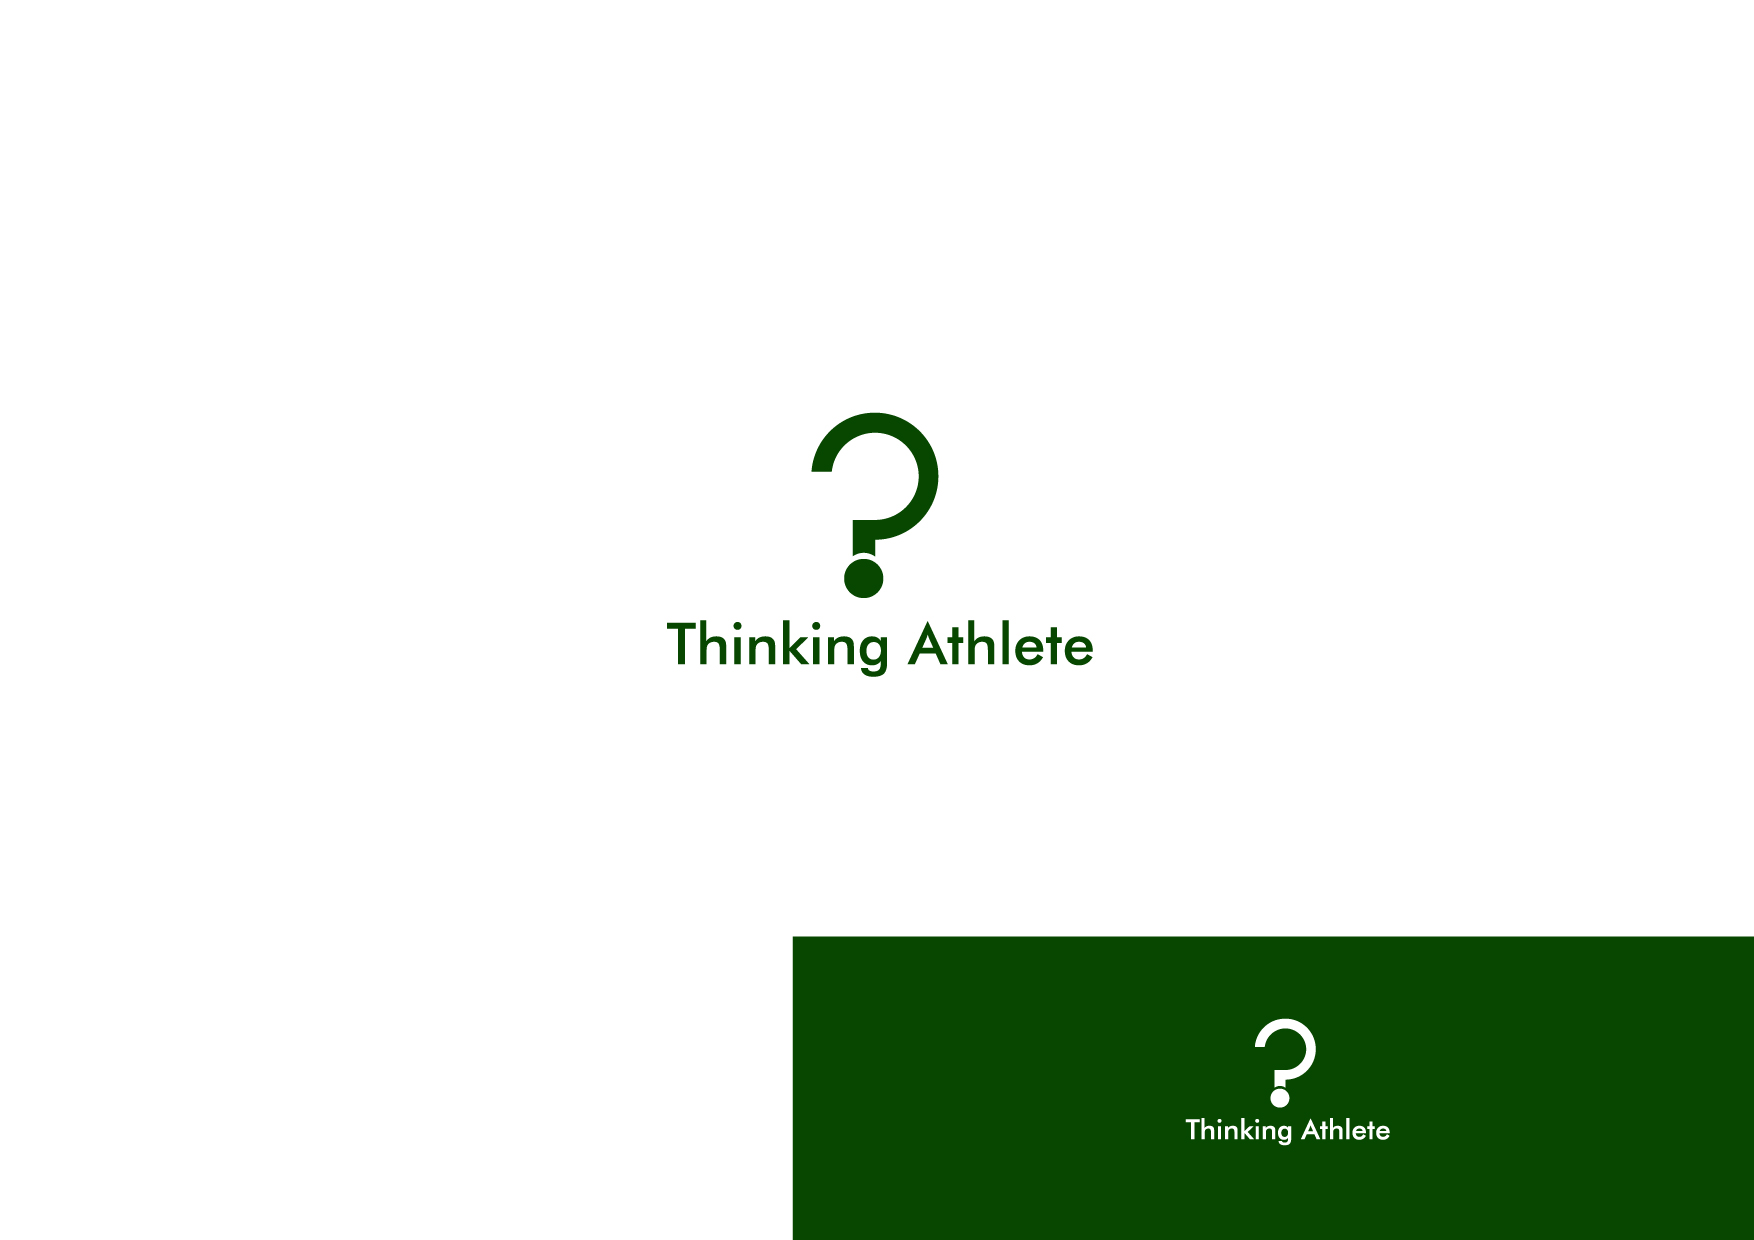 Logo Design by Osi Indra - Entry No. 36 in the Logo Design Contest Thinking Athlete Logo Design.